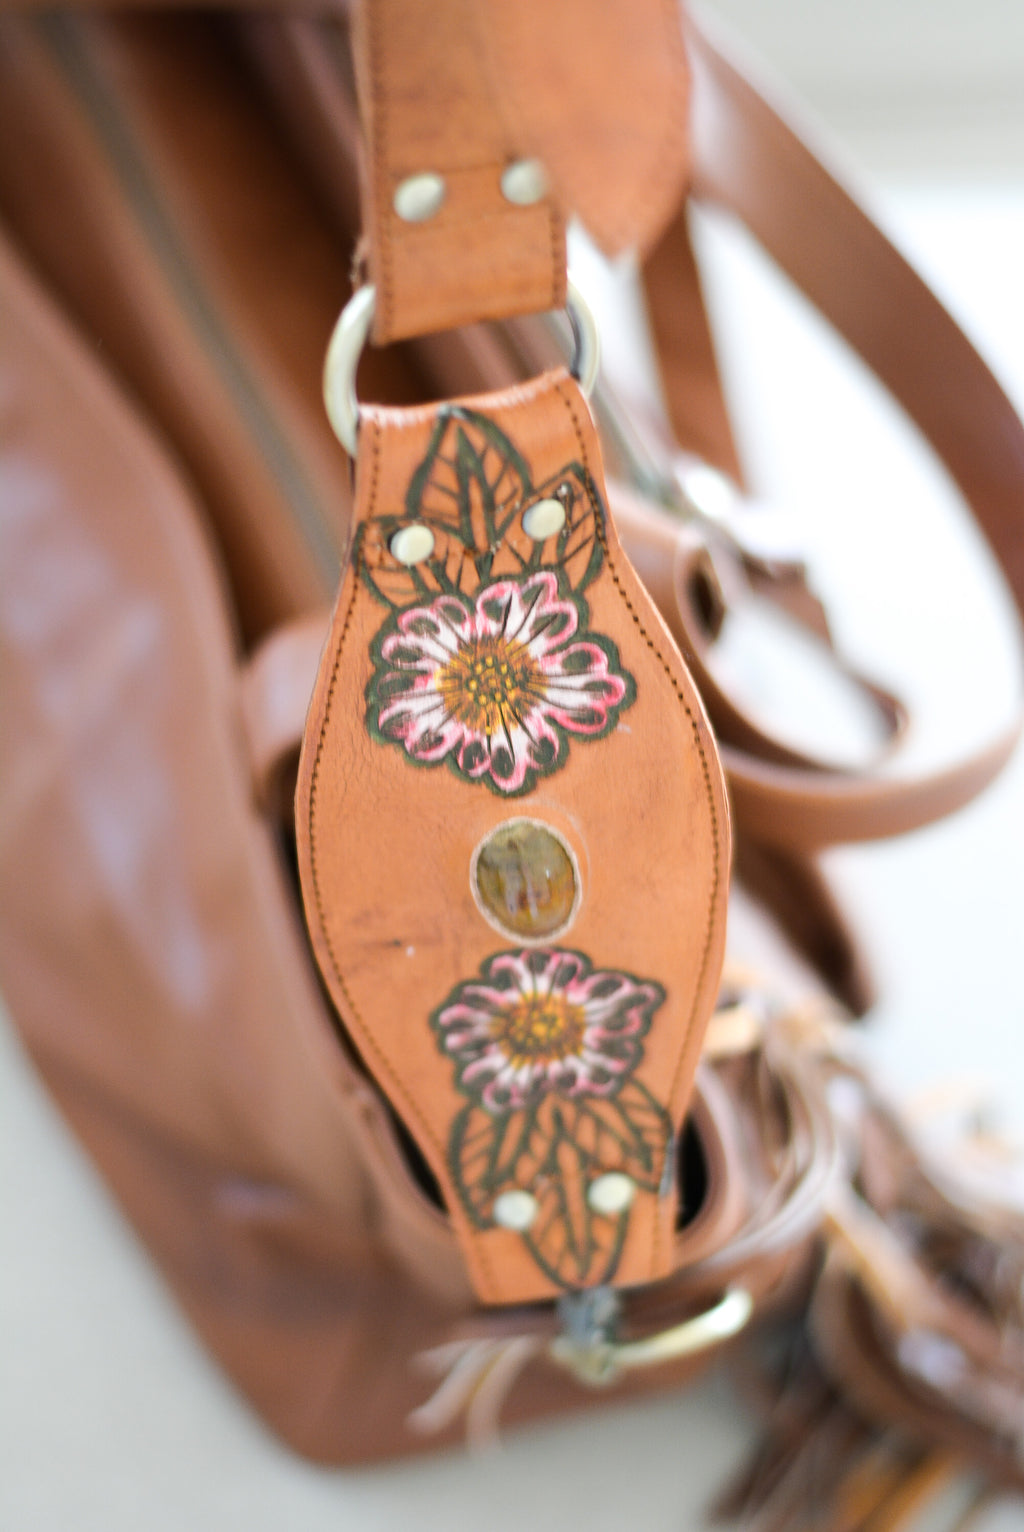 BoHo Wild & Free Baby/Travel Bag